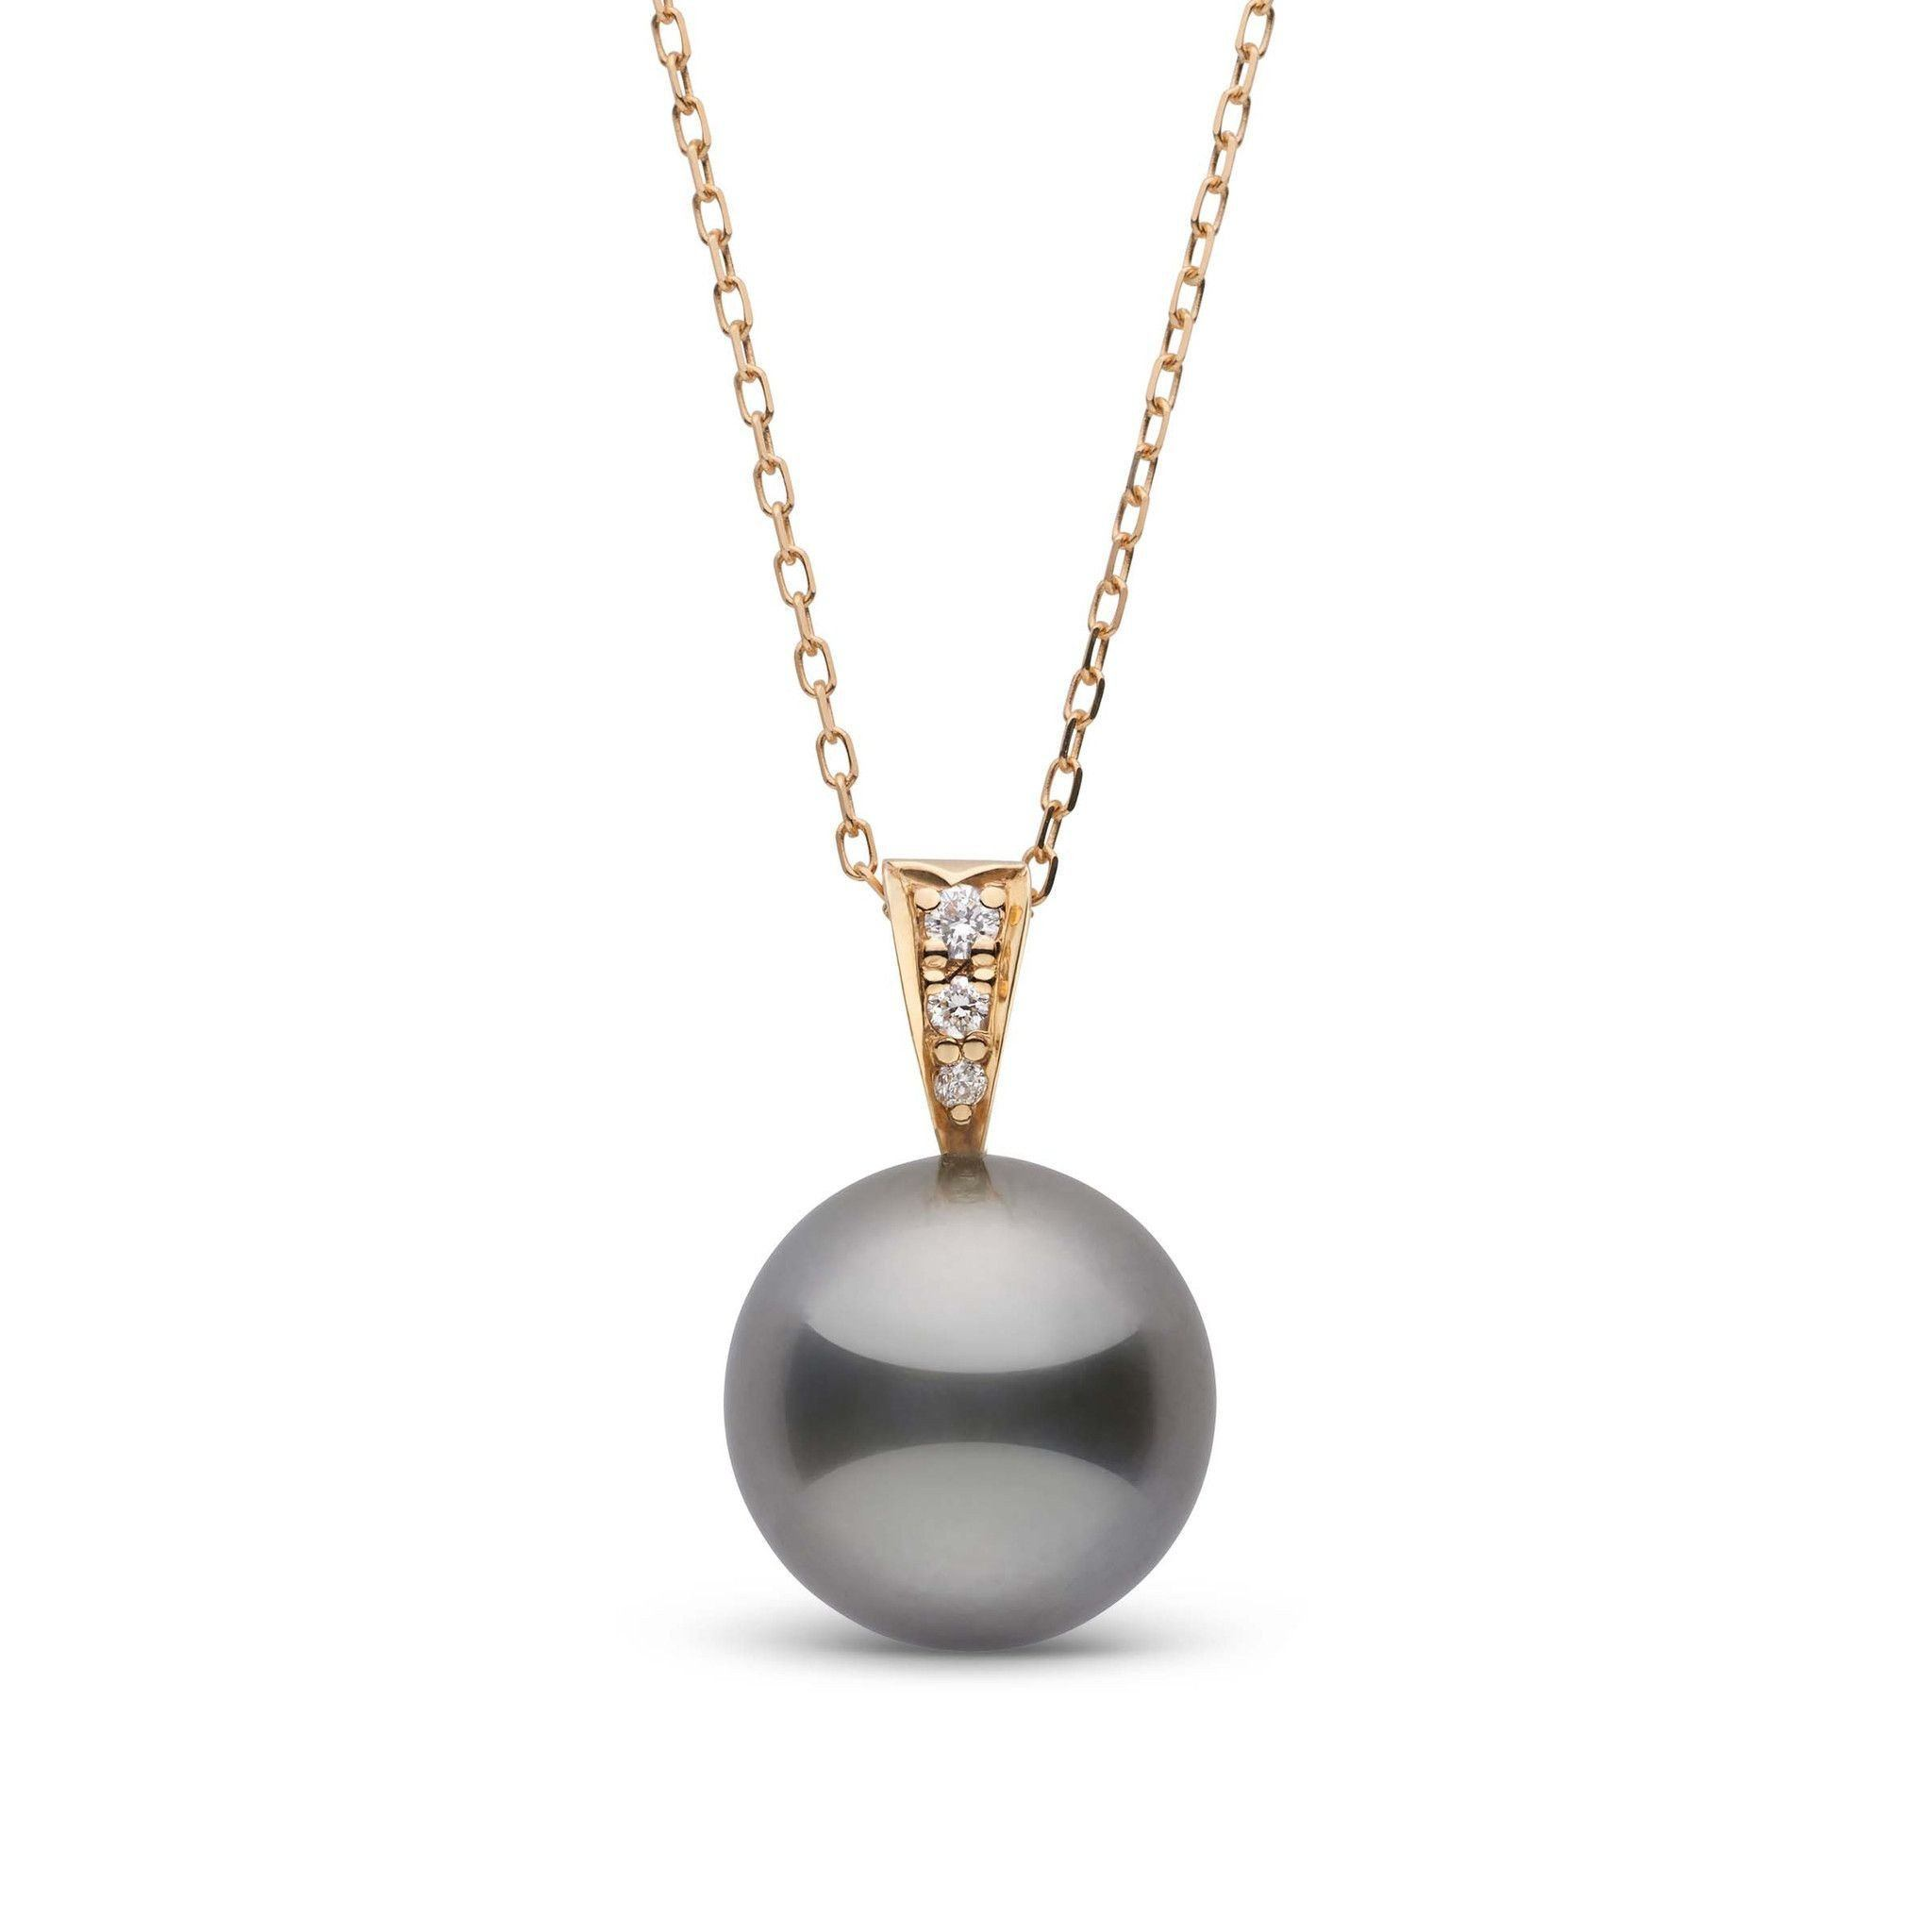 Desire Collection 11.0-12.0 mm Tahitian Pearl and Diamond Pendant